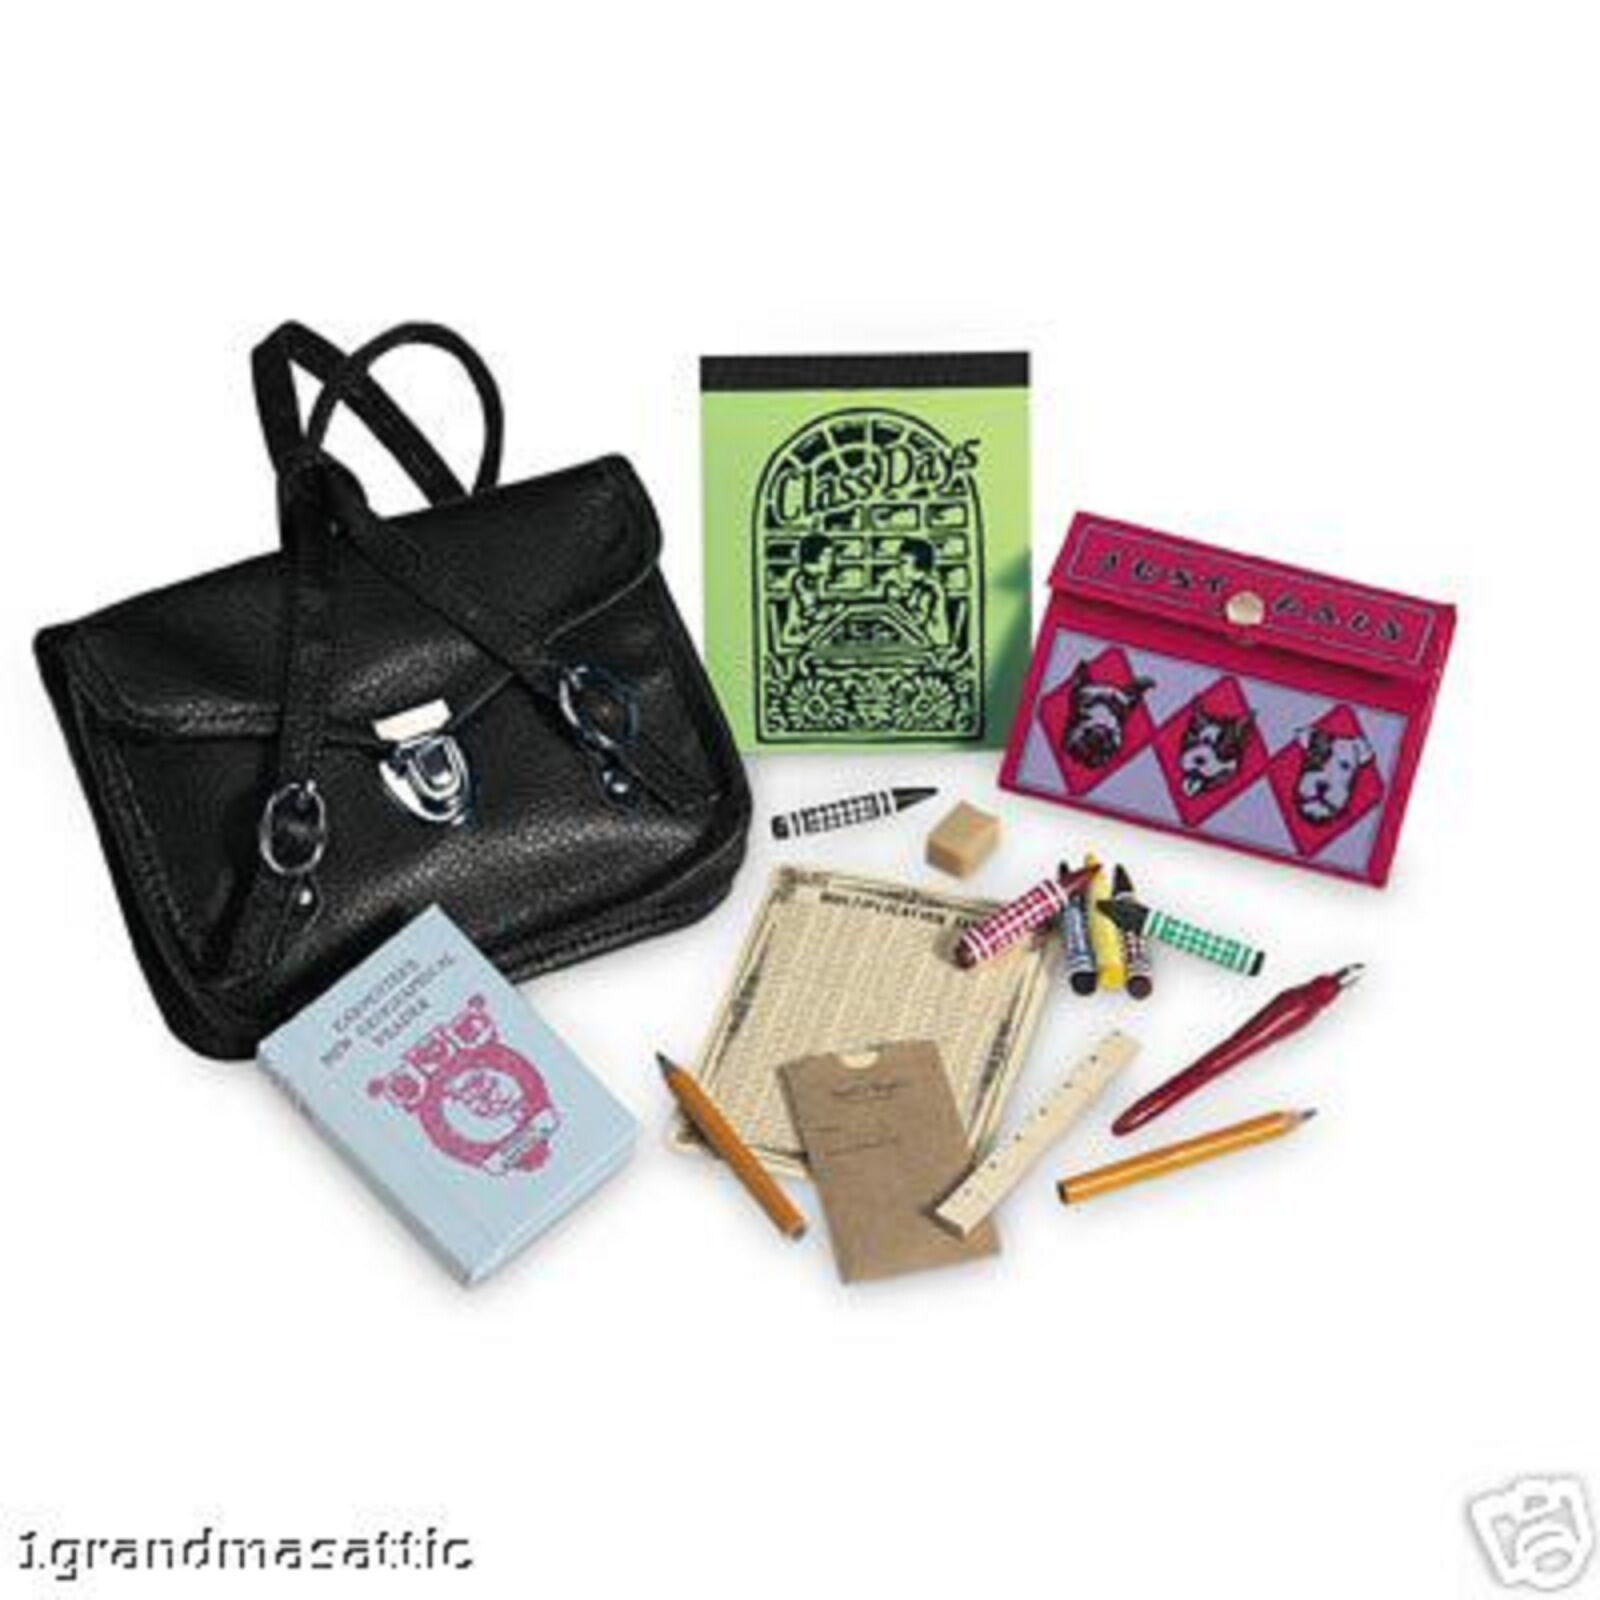 American Girl Kit's School Supplies